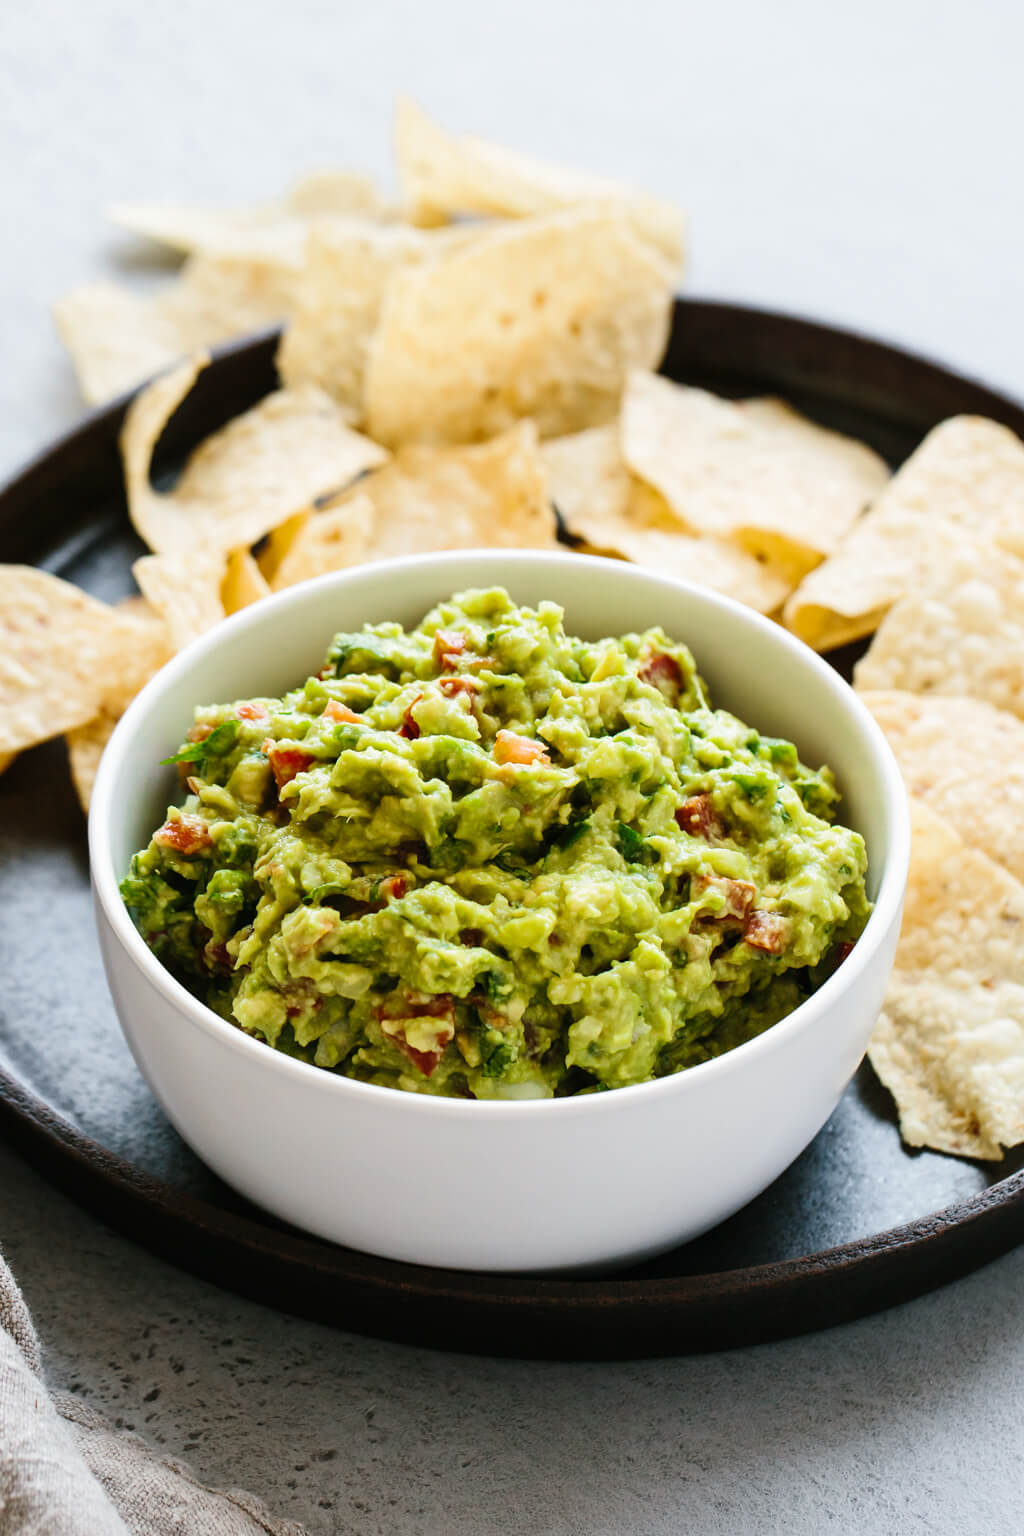 Guacamole in a bowl surrounded by chips.